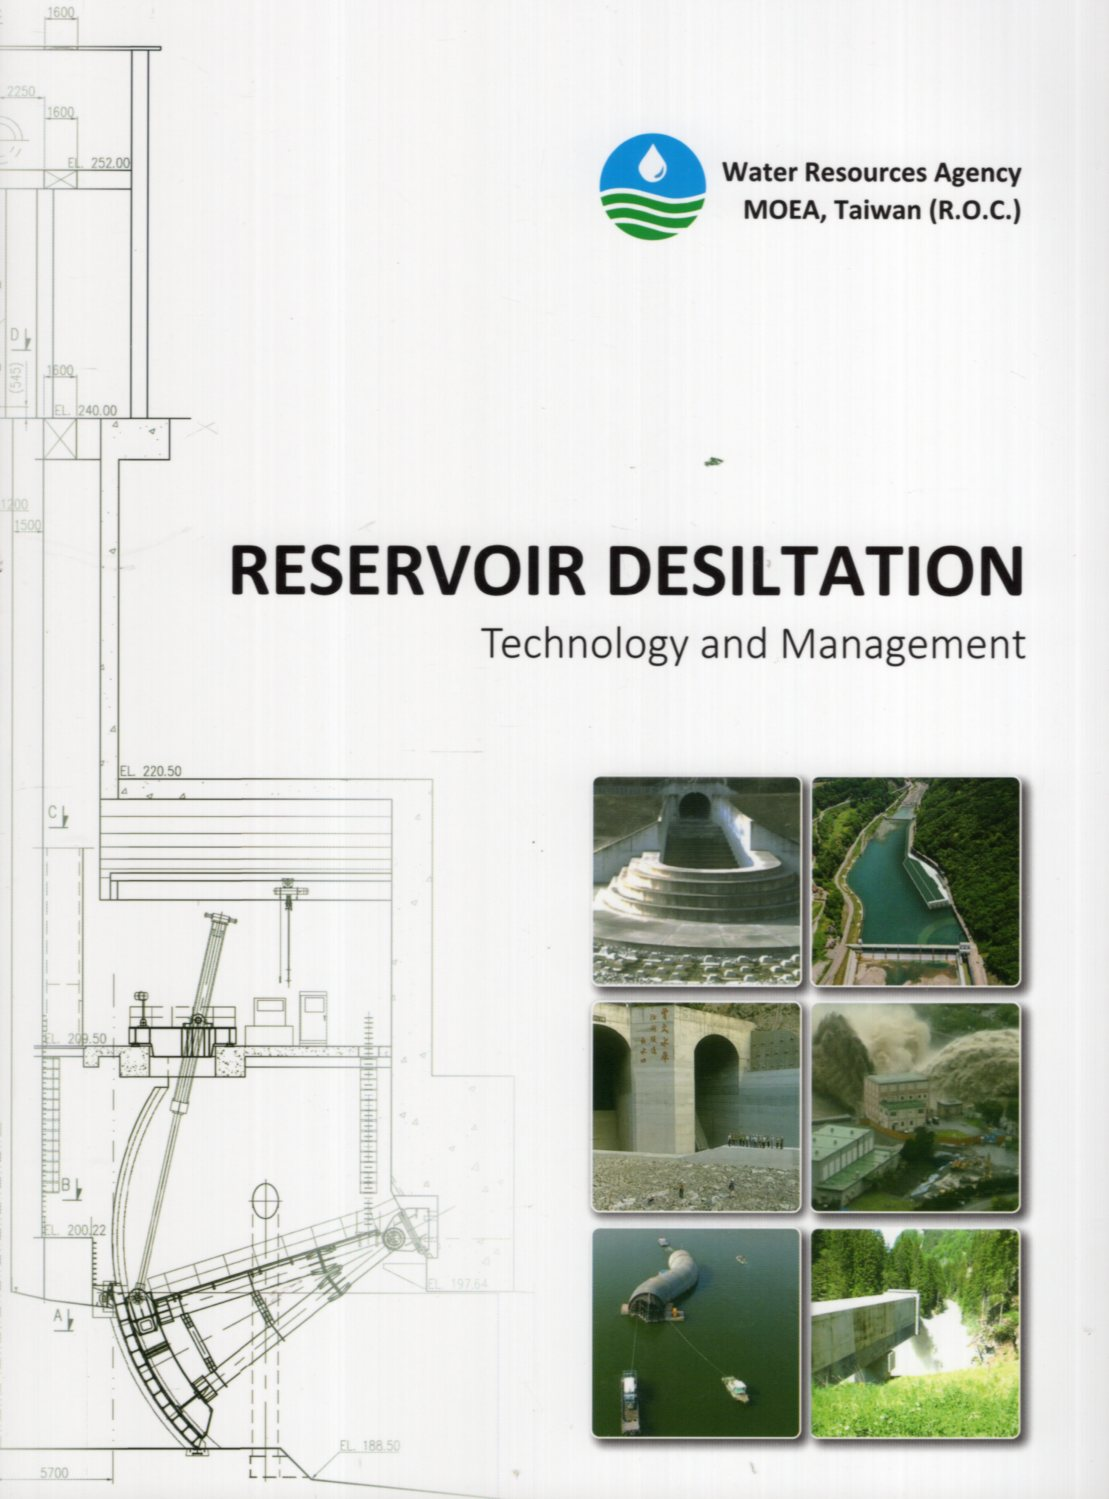 RESERVOIR DESILTATION: Technology and Management